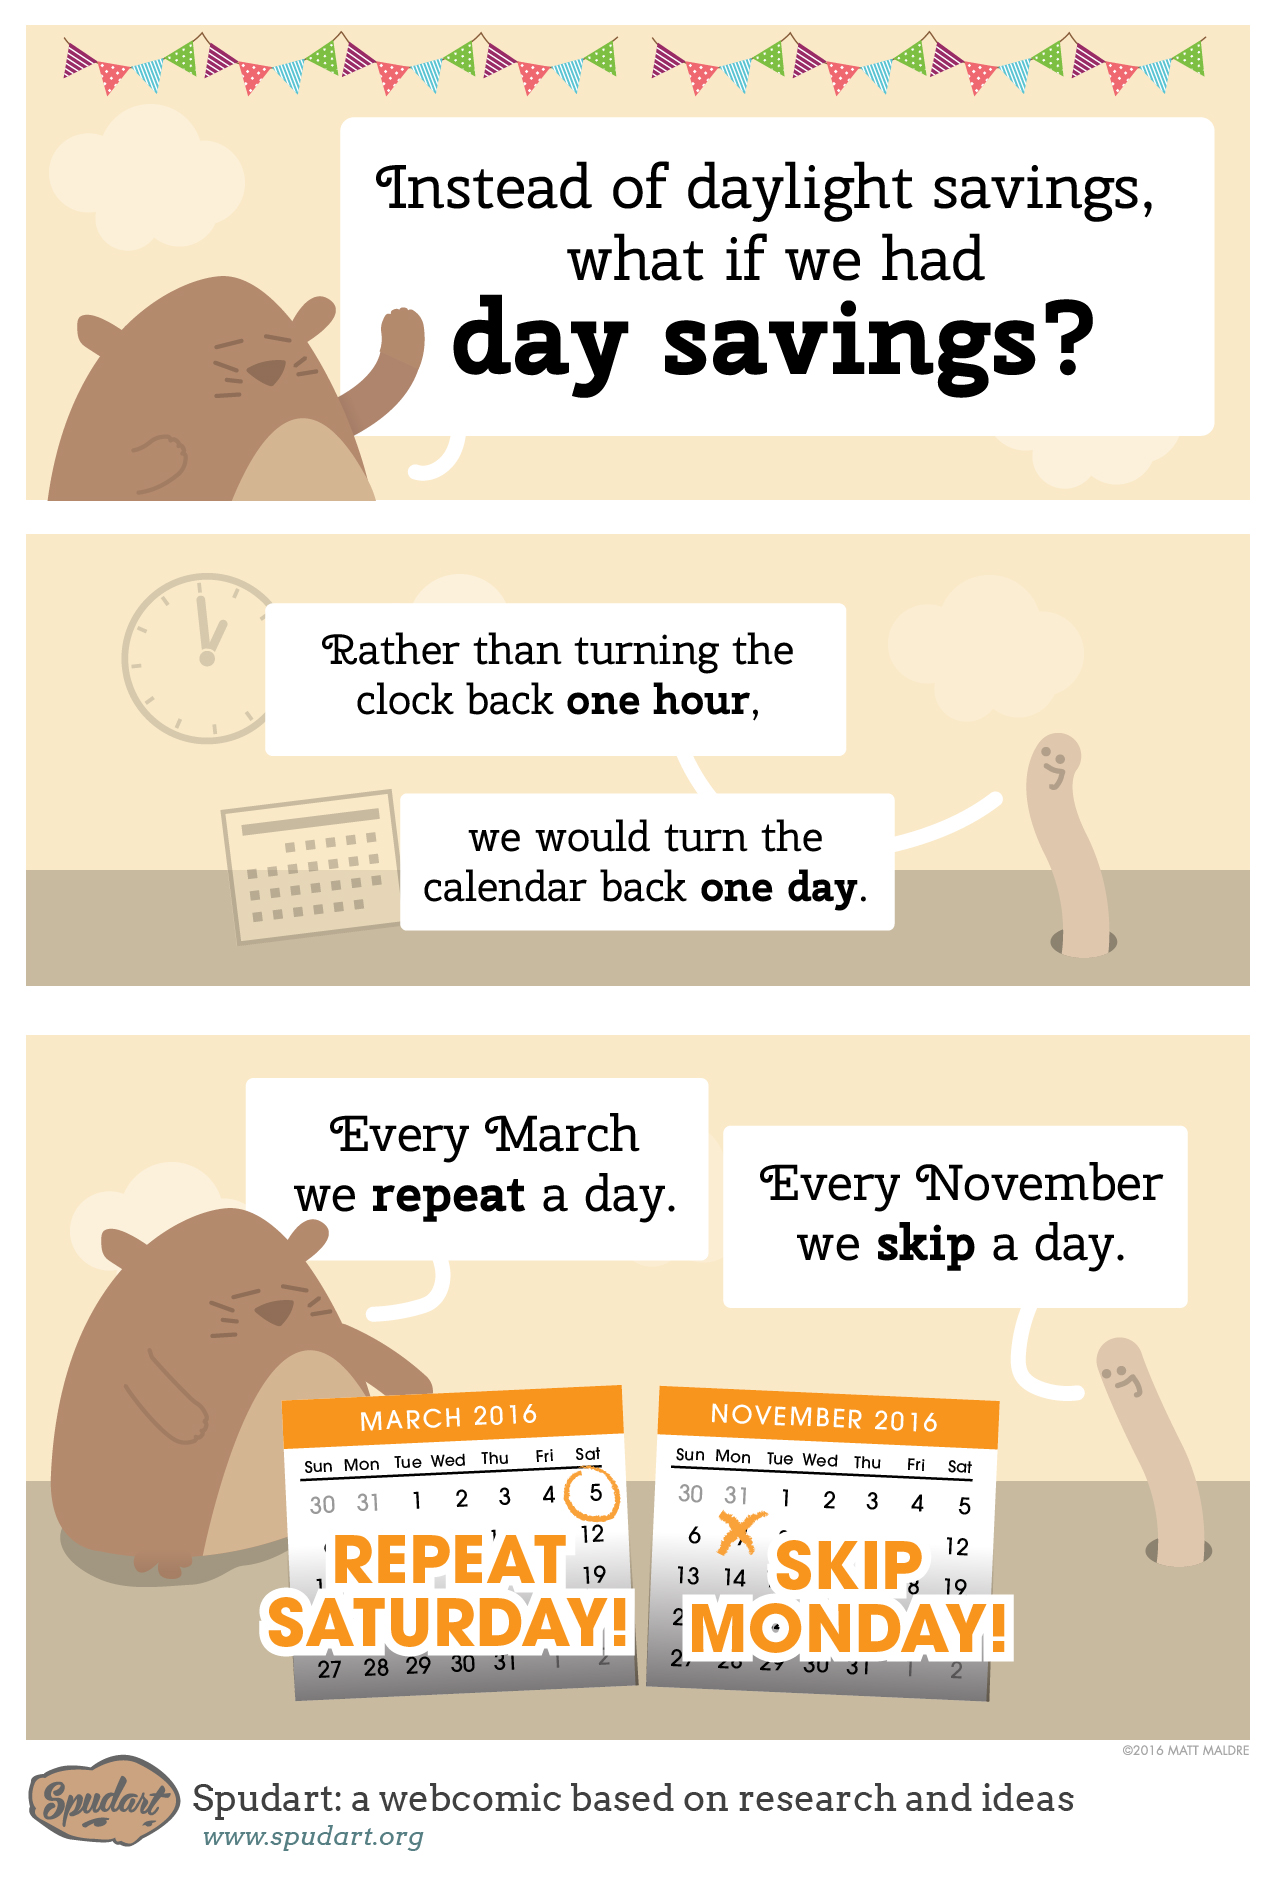 Instead of Daylight Savings, what if we had Day Savings?